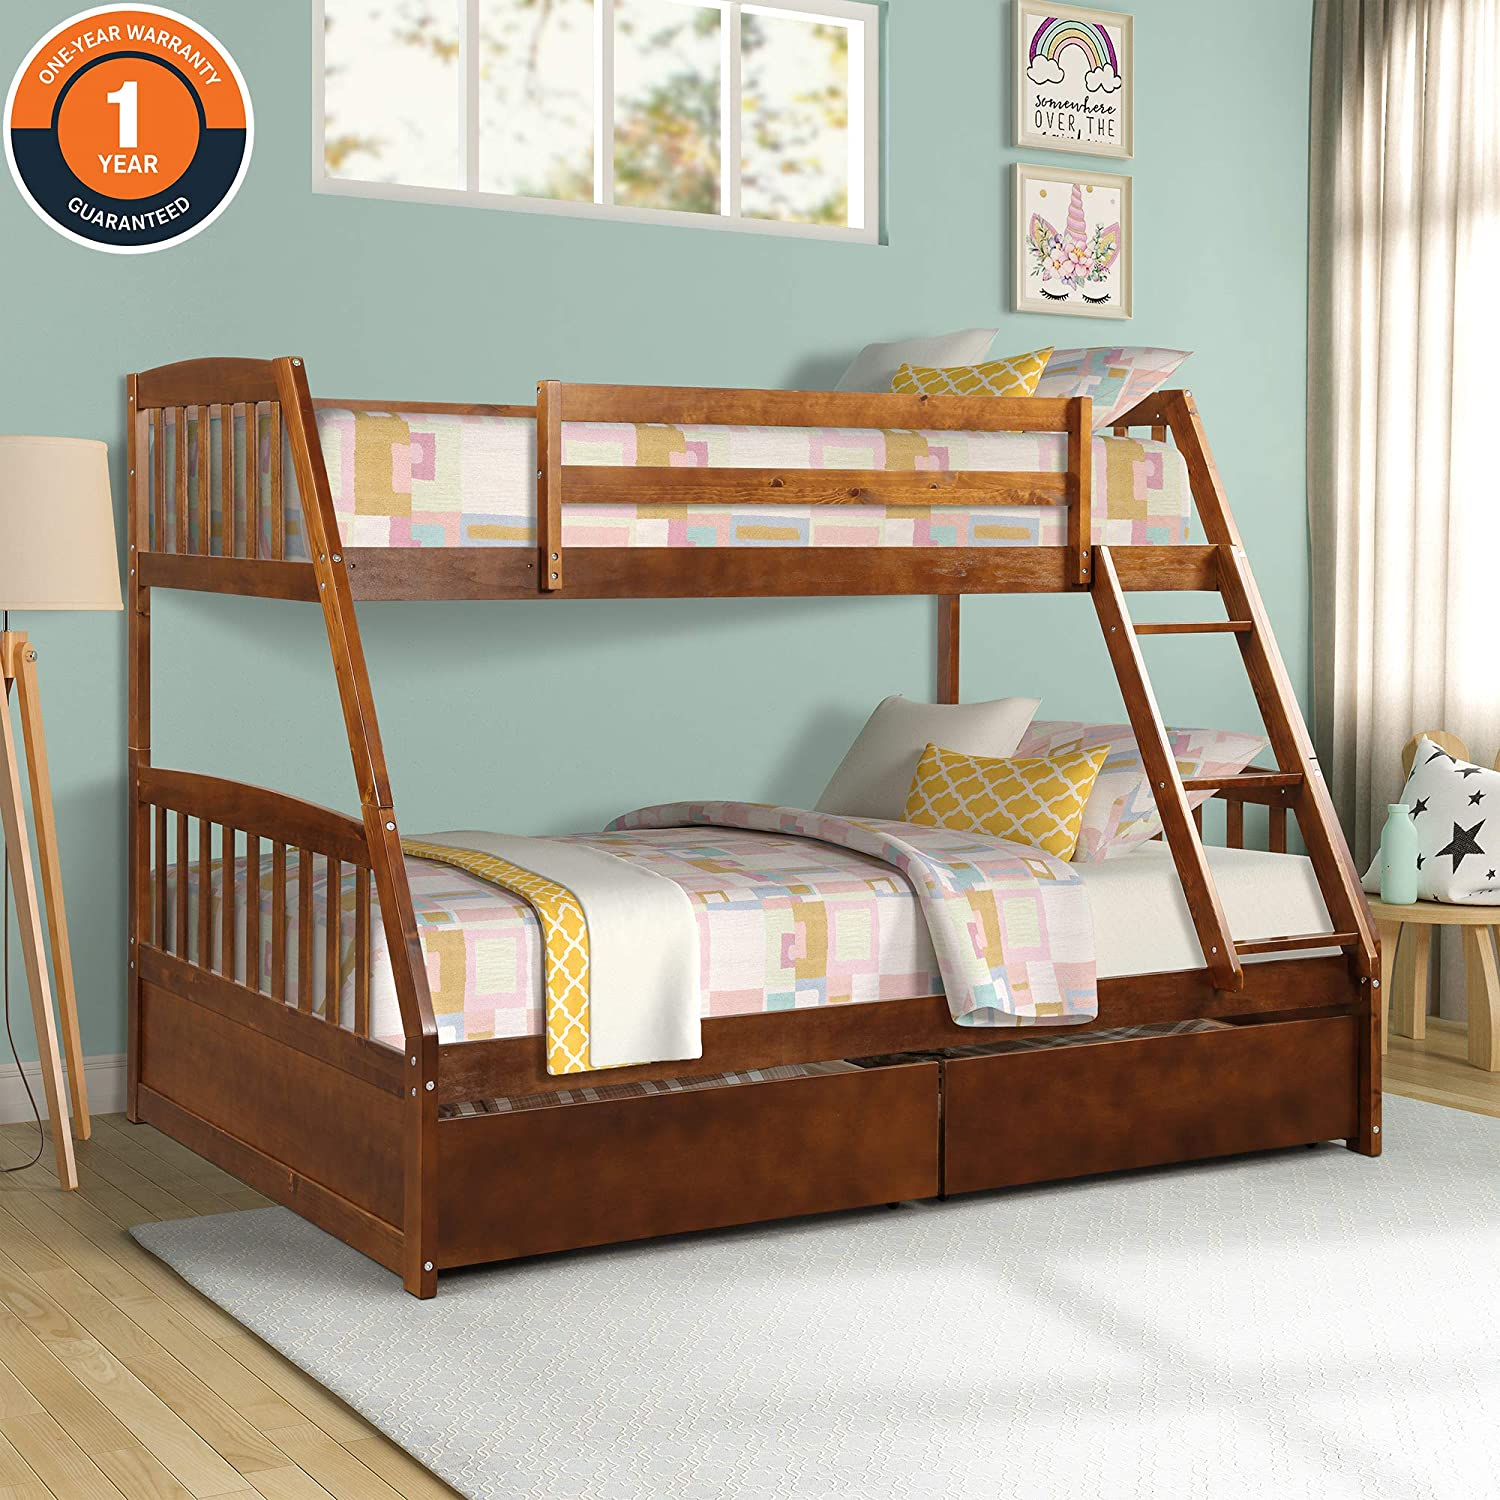 Wood Twin Over Full Bunk beds, with 2 Storage Drawers, Sturdy Wooden Frame Ladder, and Safety Rails Convenience to Take Care of Your Children